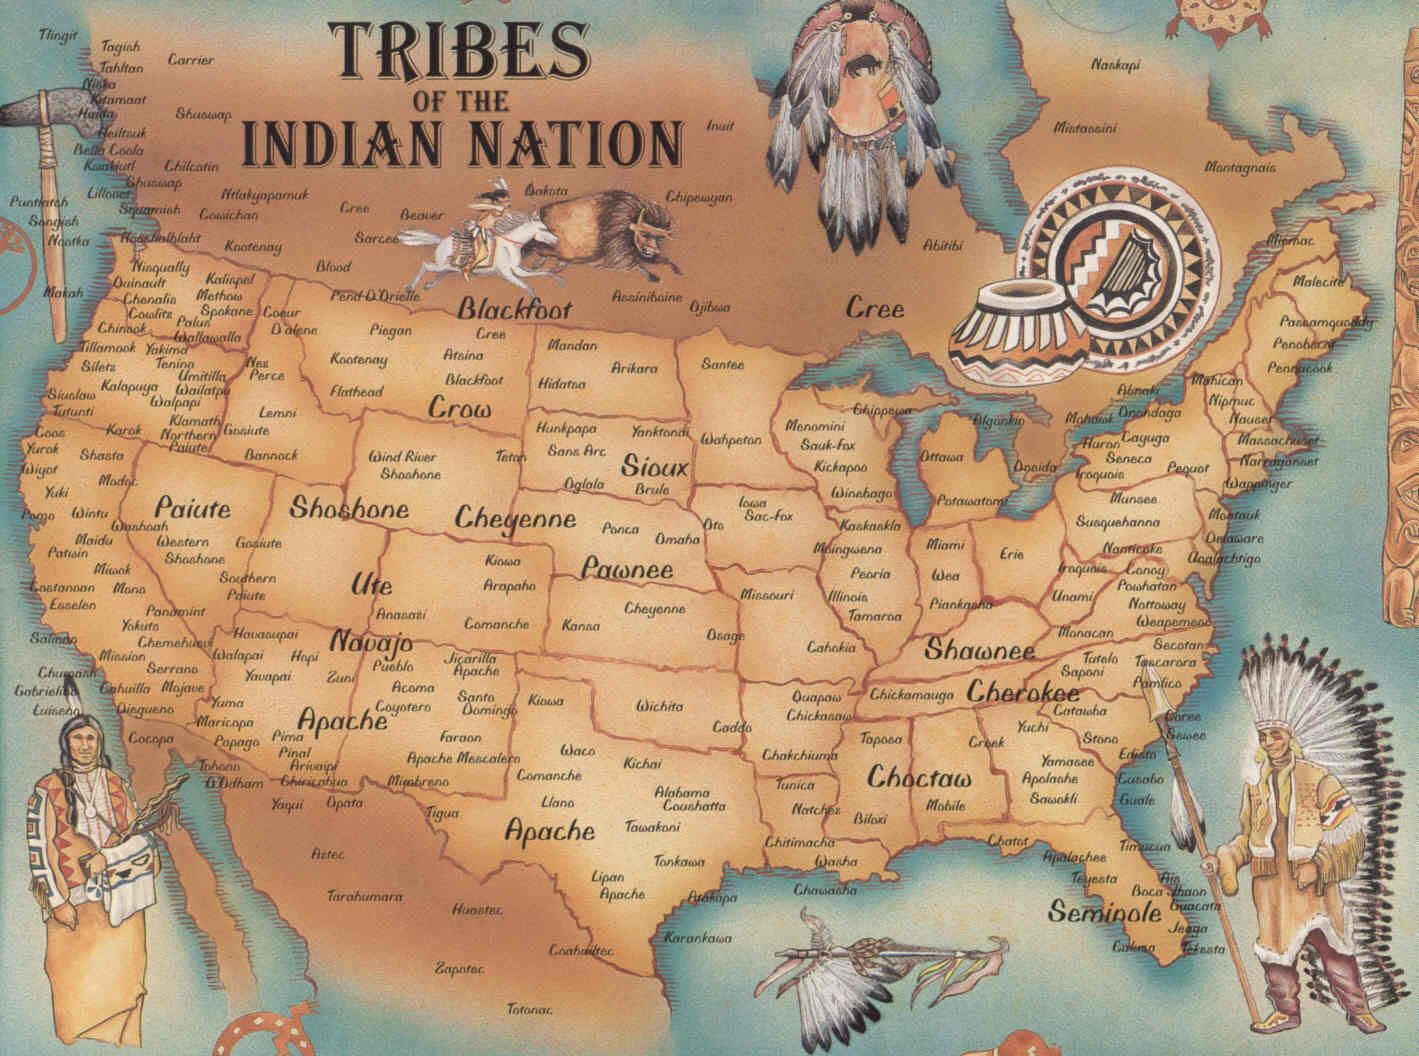 yokut and seneca tribe Native american history  the seneca nation of indians is located in western new york, in cattaraugus county what kind of house did patricians live in patricians lived in luxurious villas.